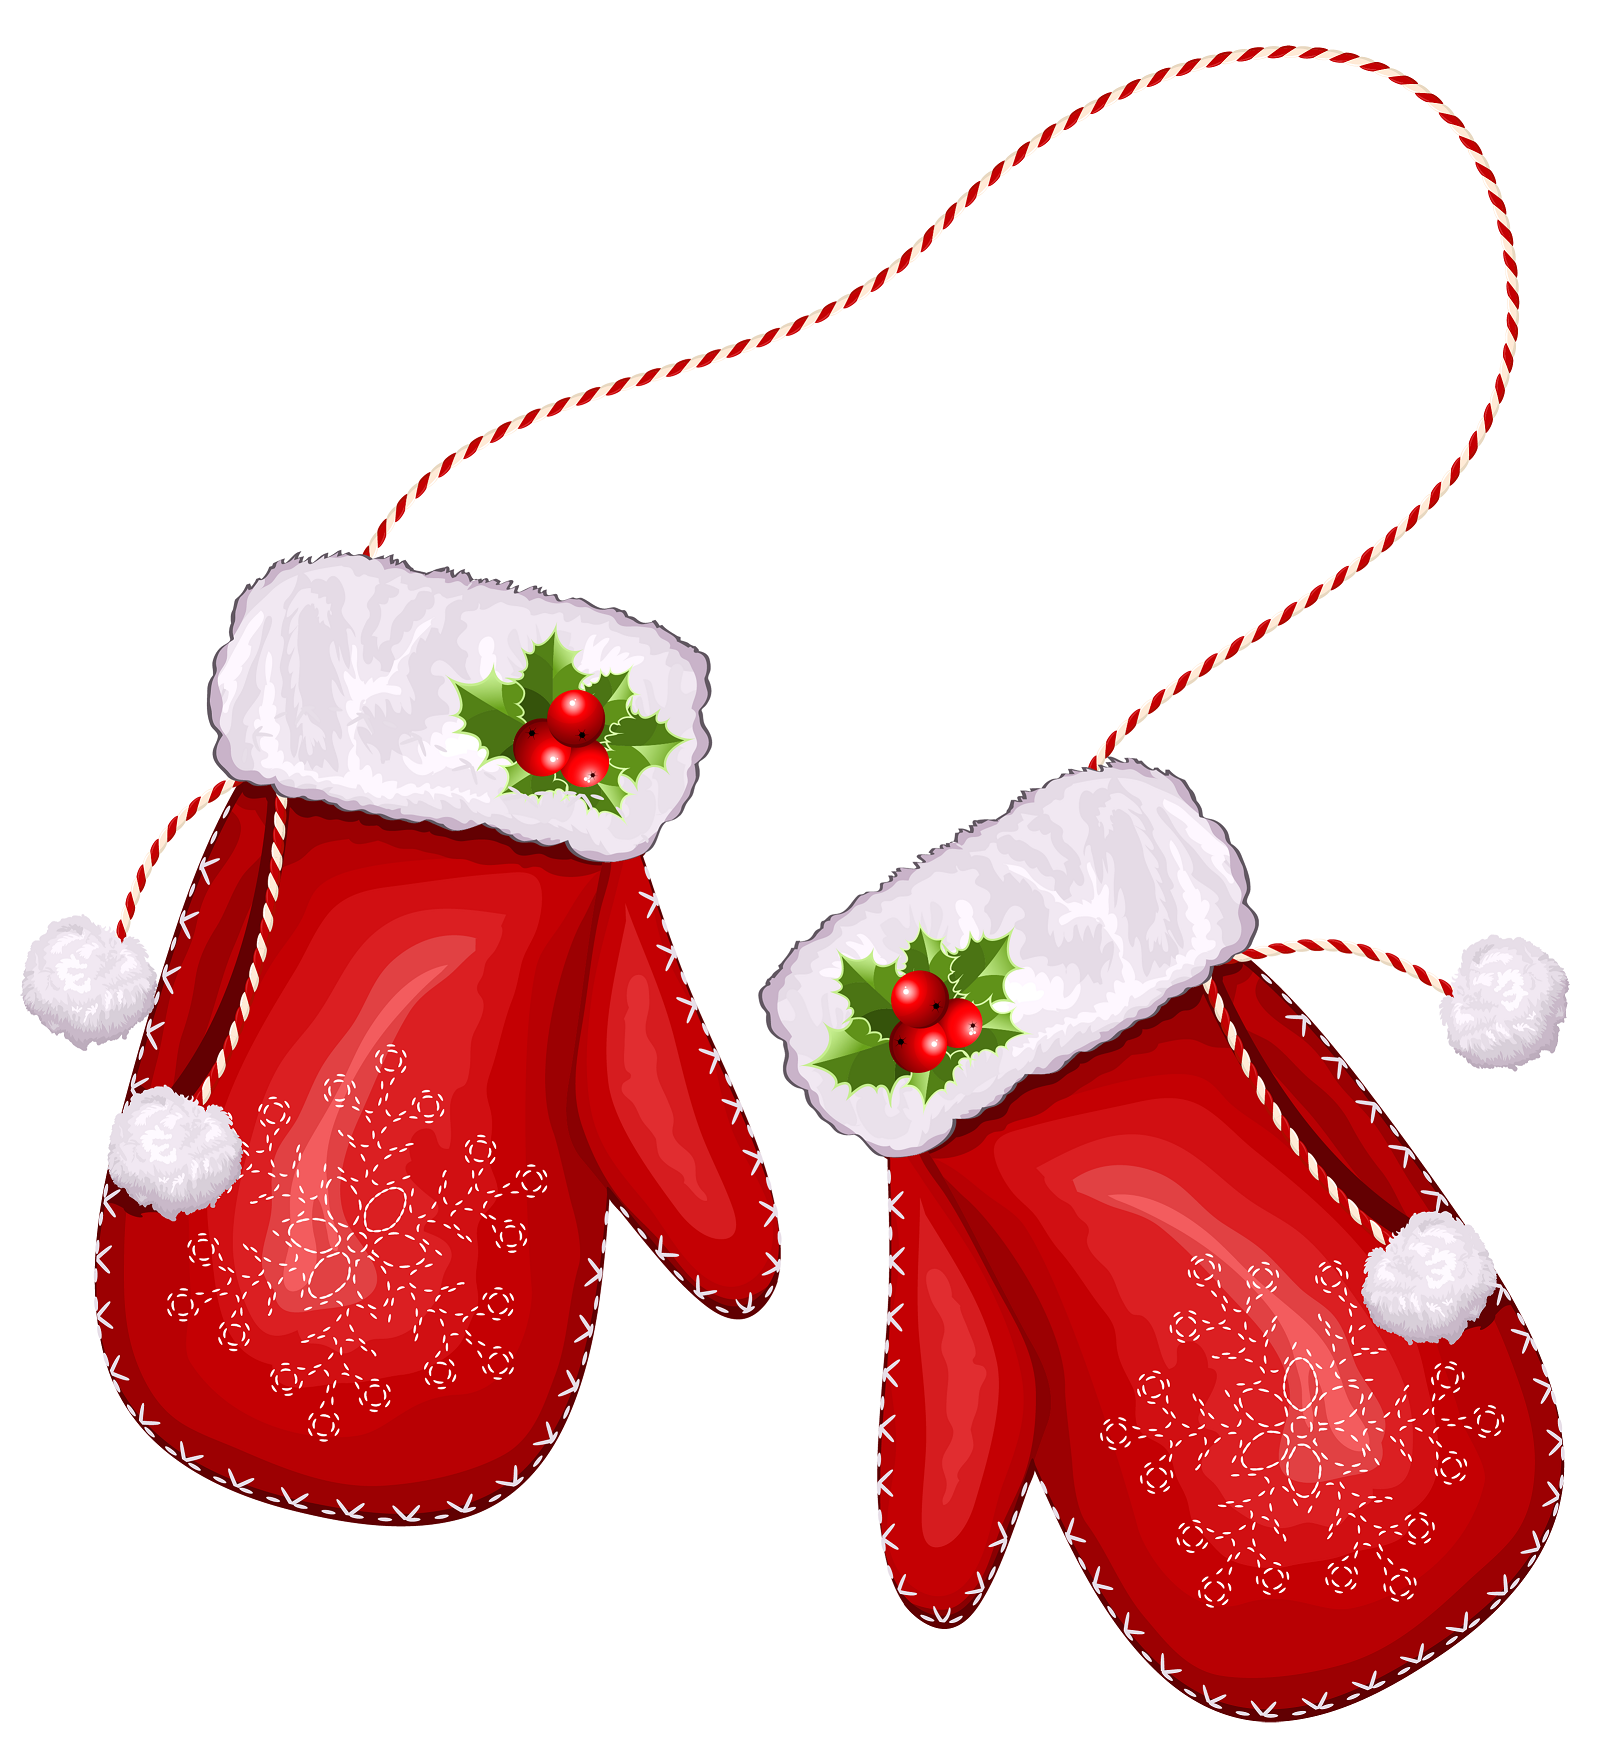 Christmas mittens | Holiday & events | Pinterest